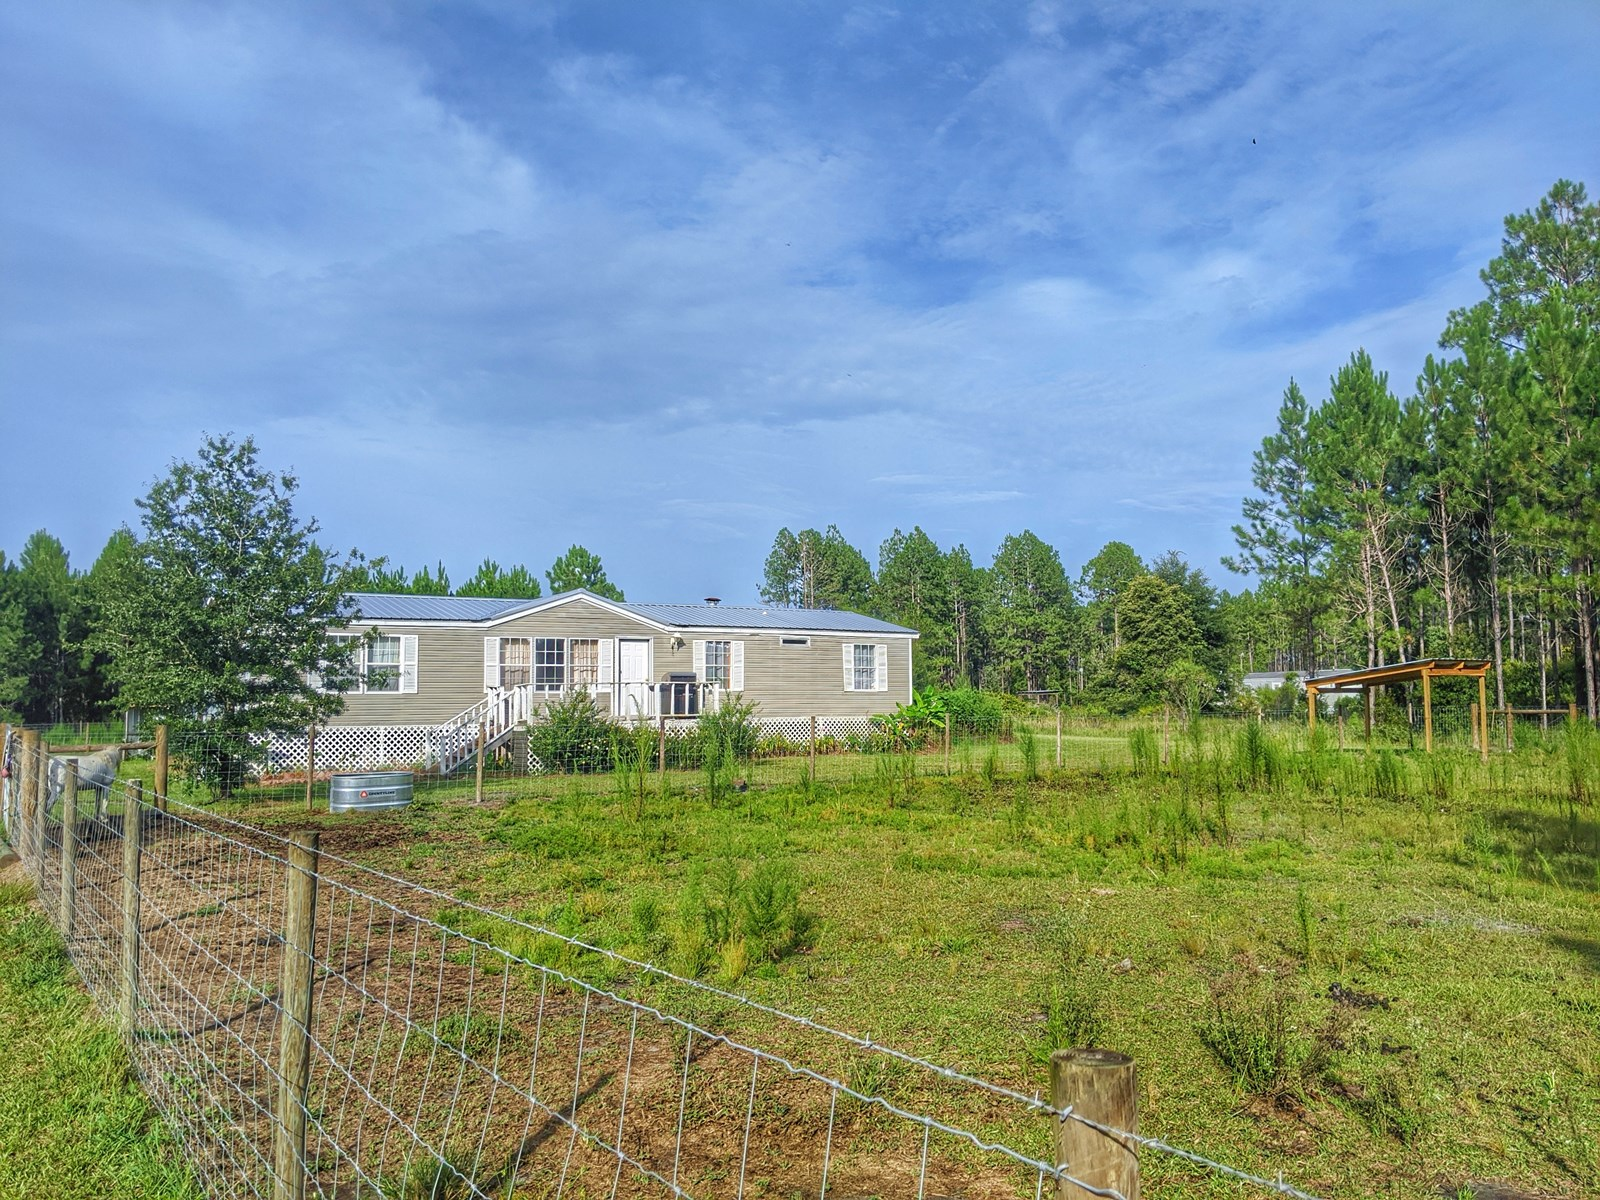 Mobile home on 10 acres in Union County